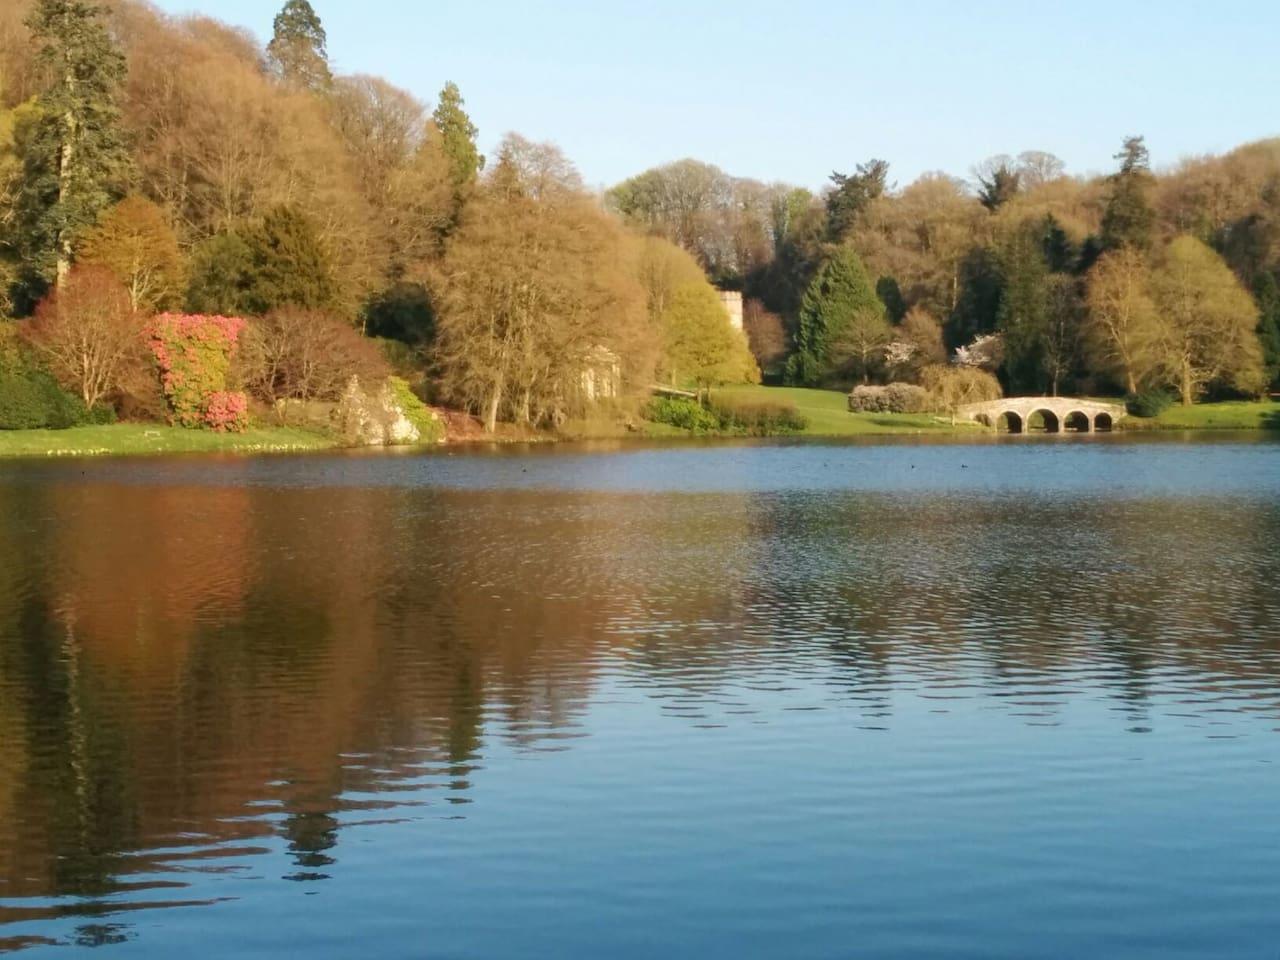 Stourhead gardens just 3 miles away.